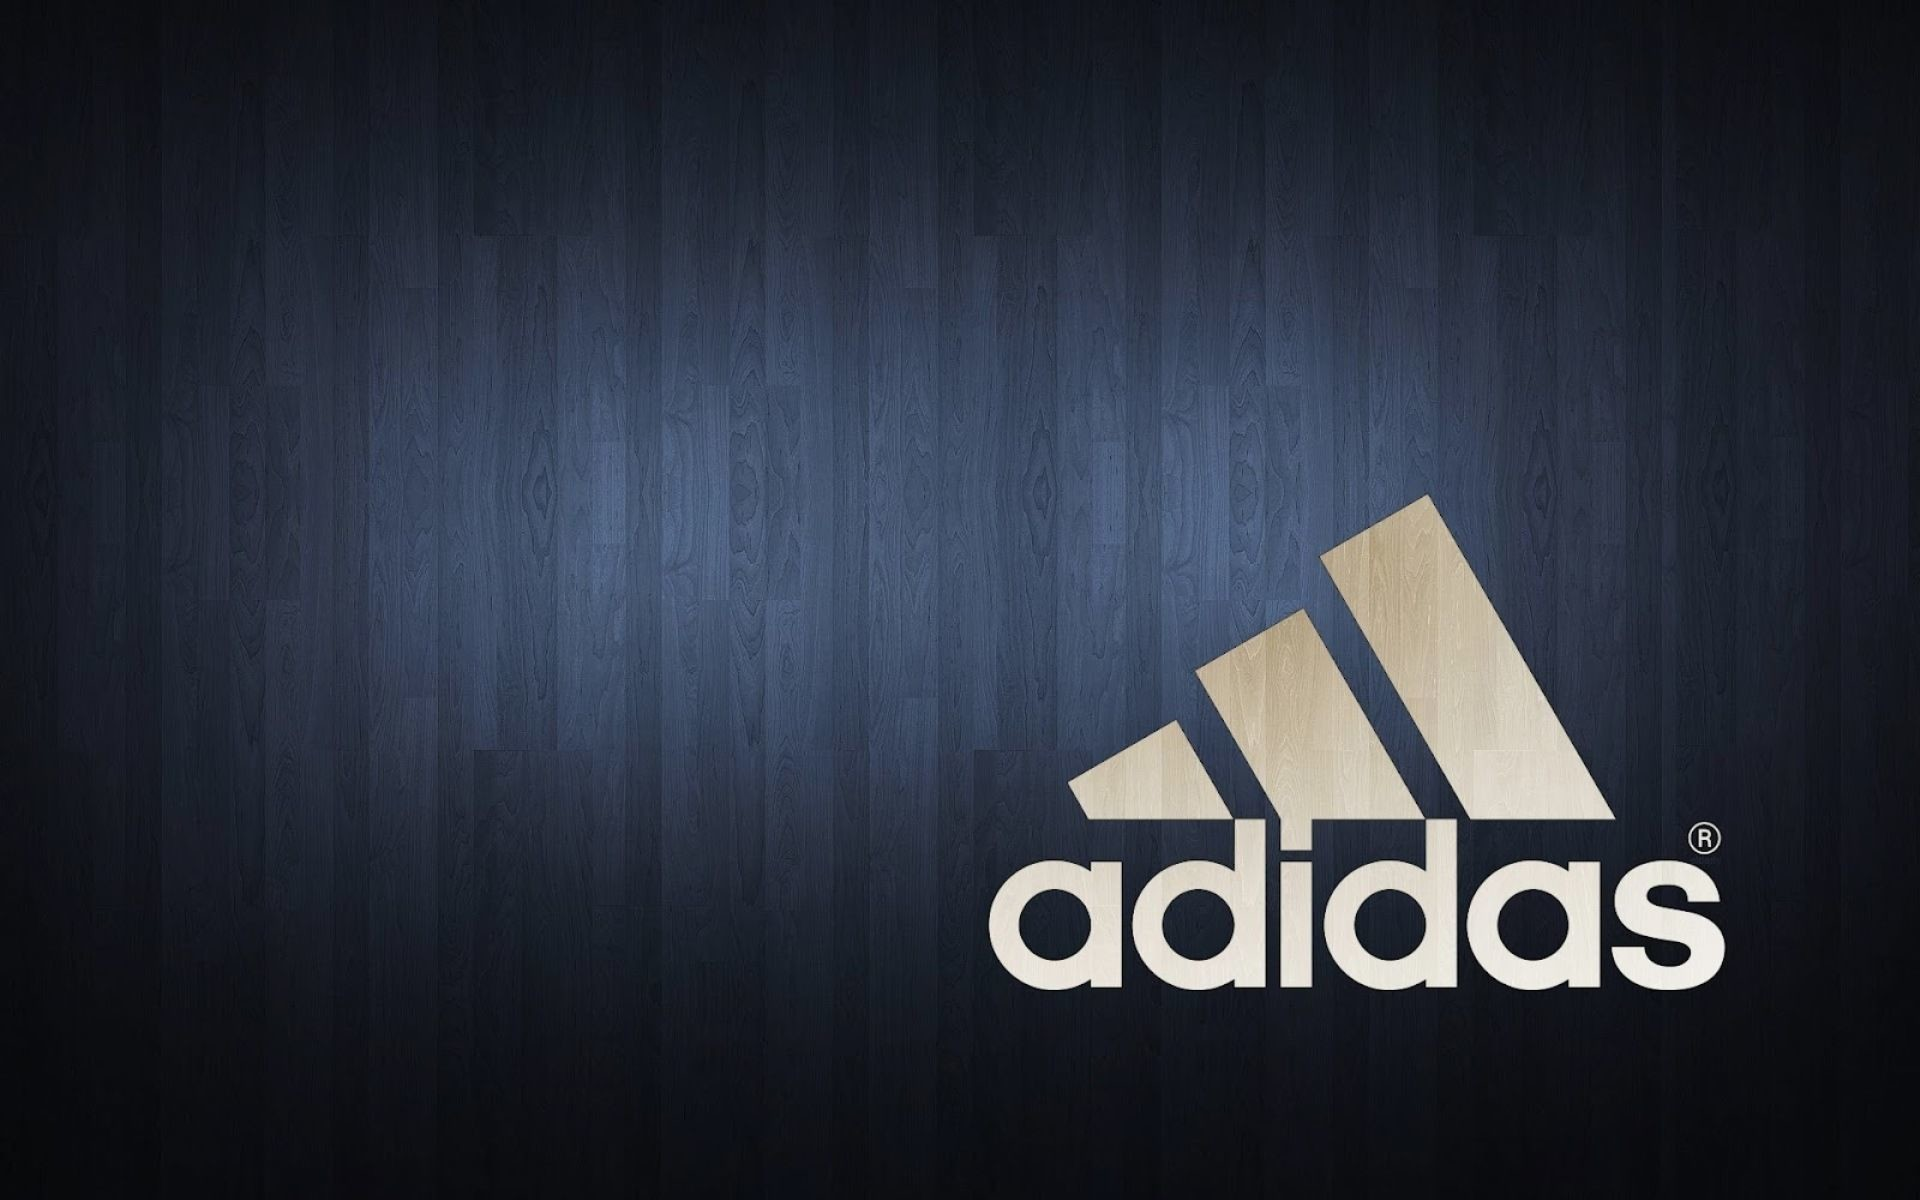 1920x1200 Adidas Logo Wallpapers 2015 - Wallpaper Cave